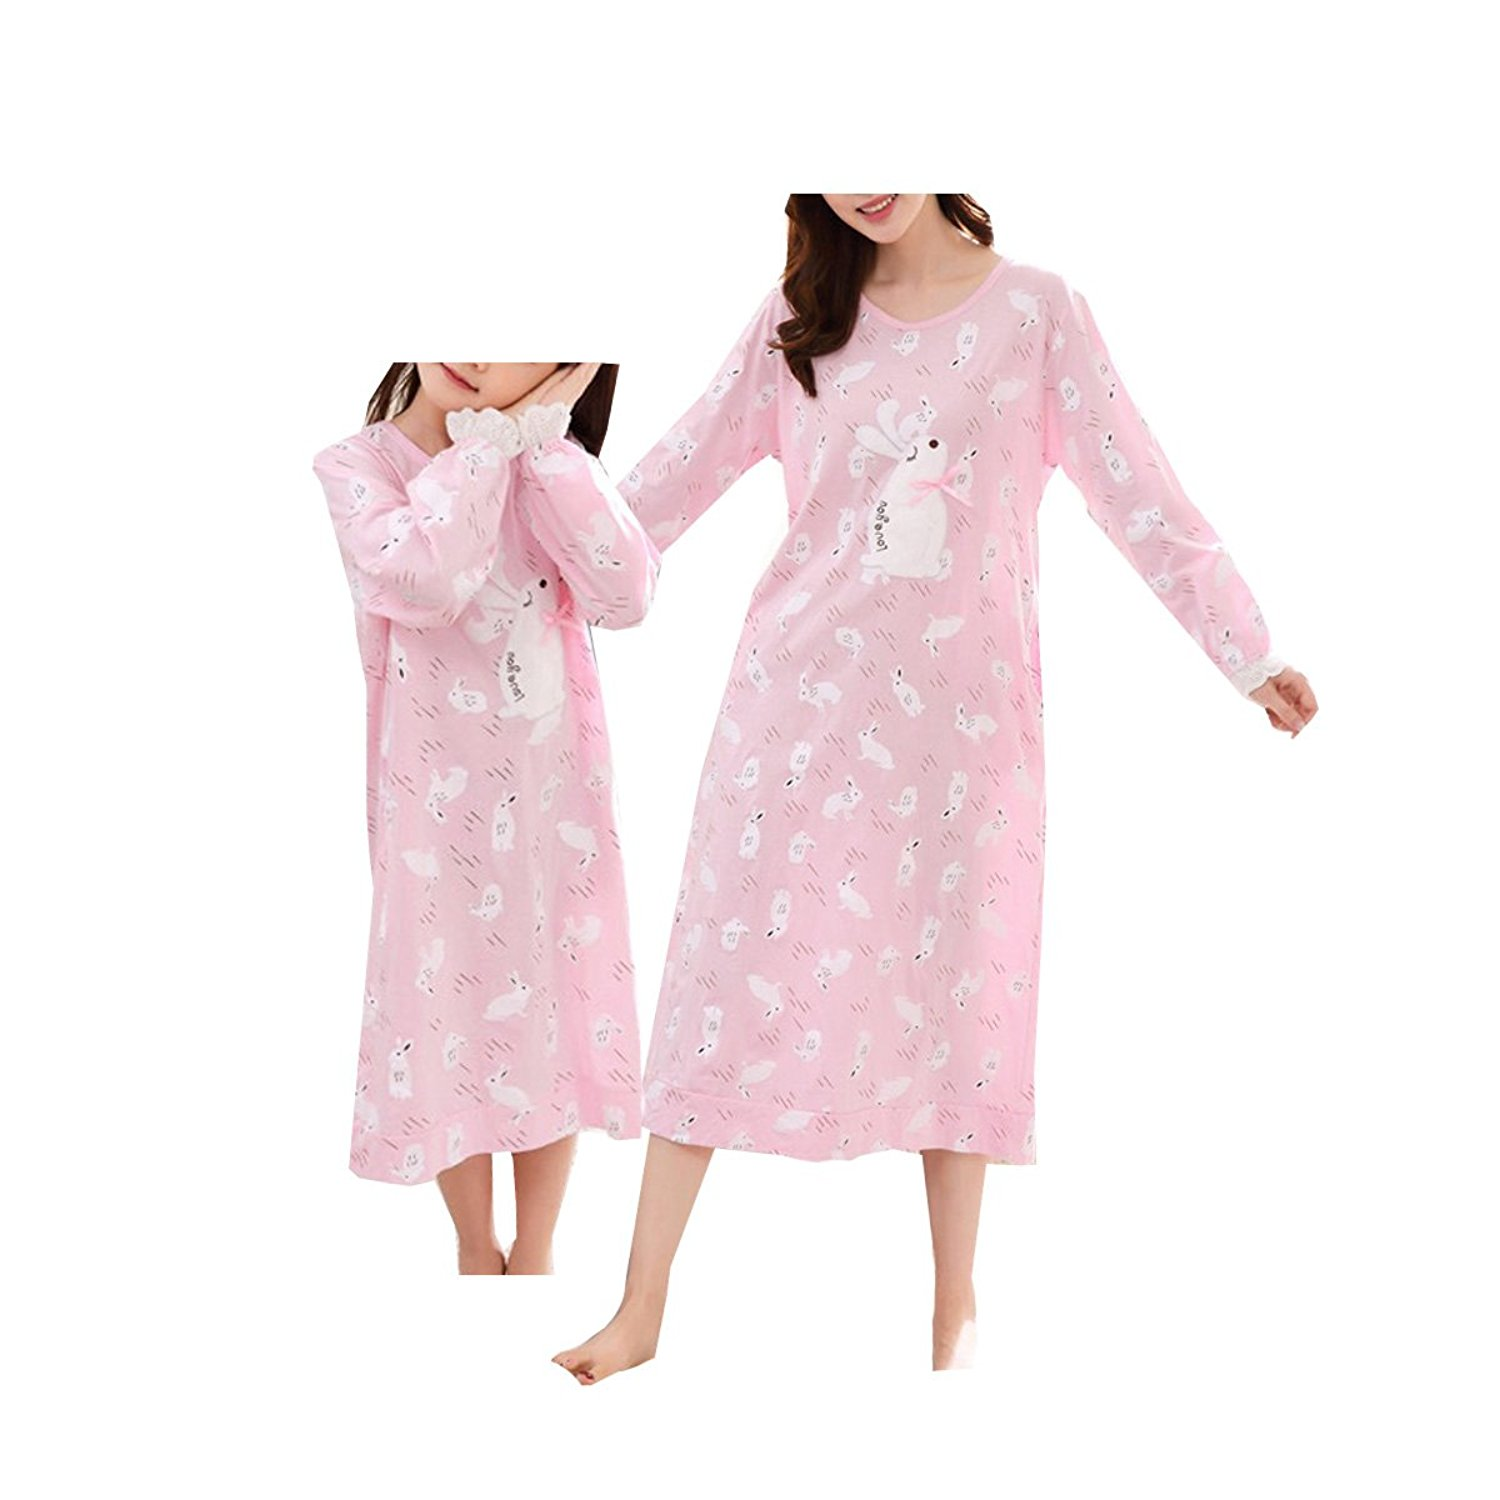 0bd22d2b7900b Get Quotations · BAIYIXIN Fashion Store Cute Rabbit Littele Girls and Bigs  Girls Cotton Pajamas Set Pink Sleepwear Homedress